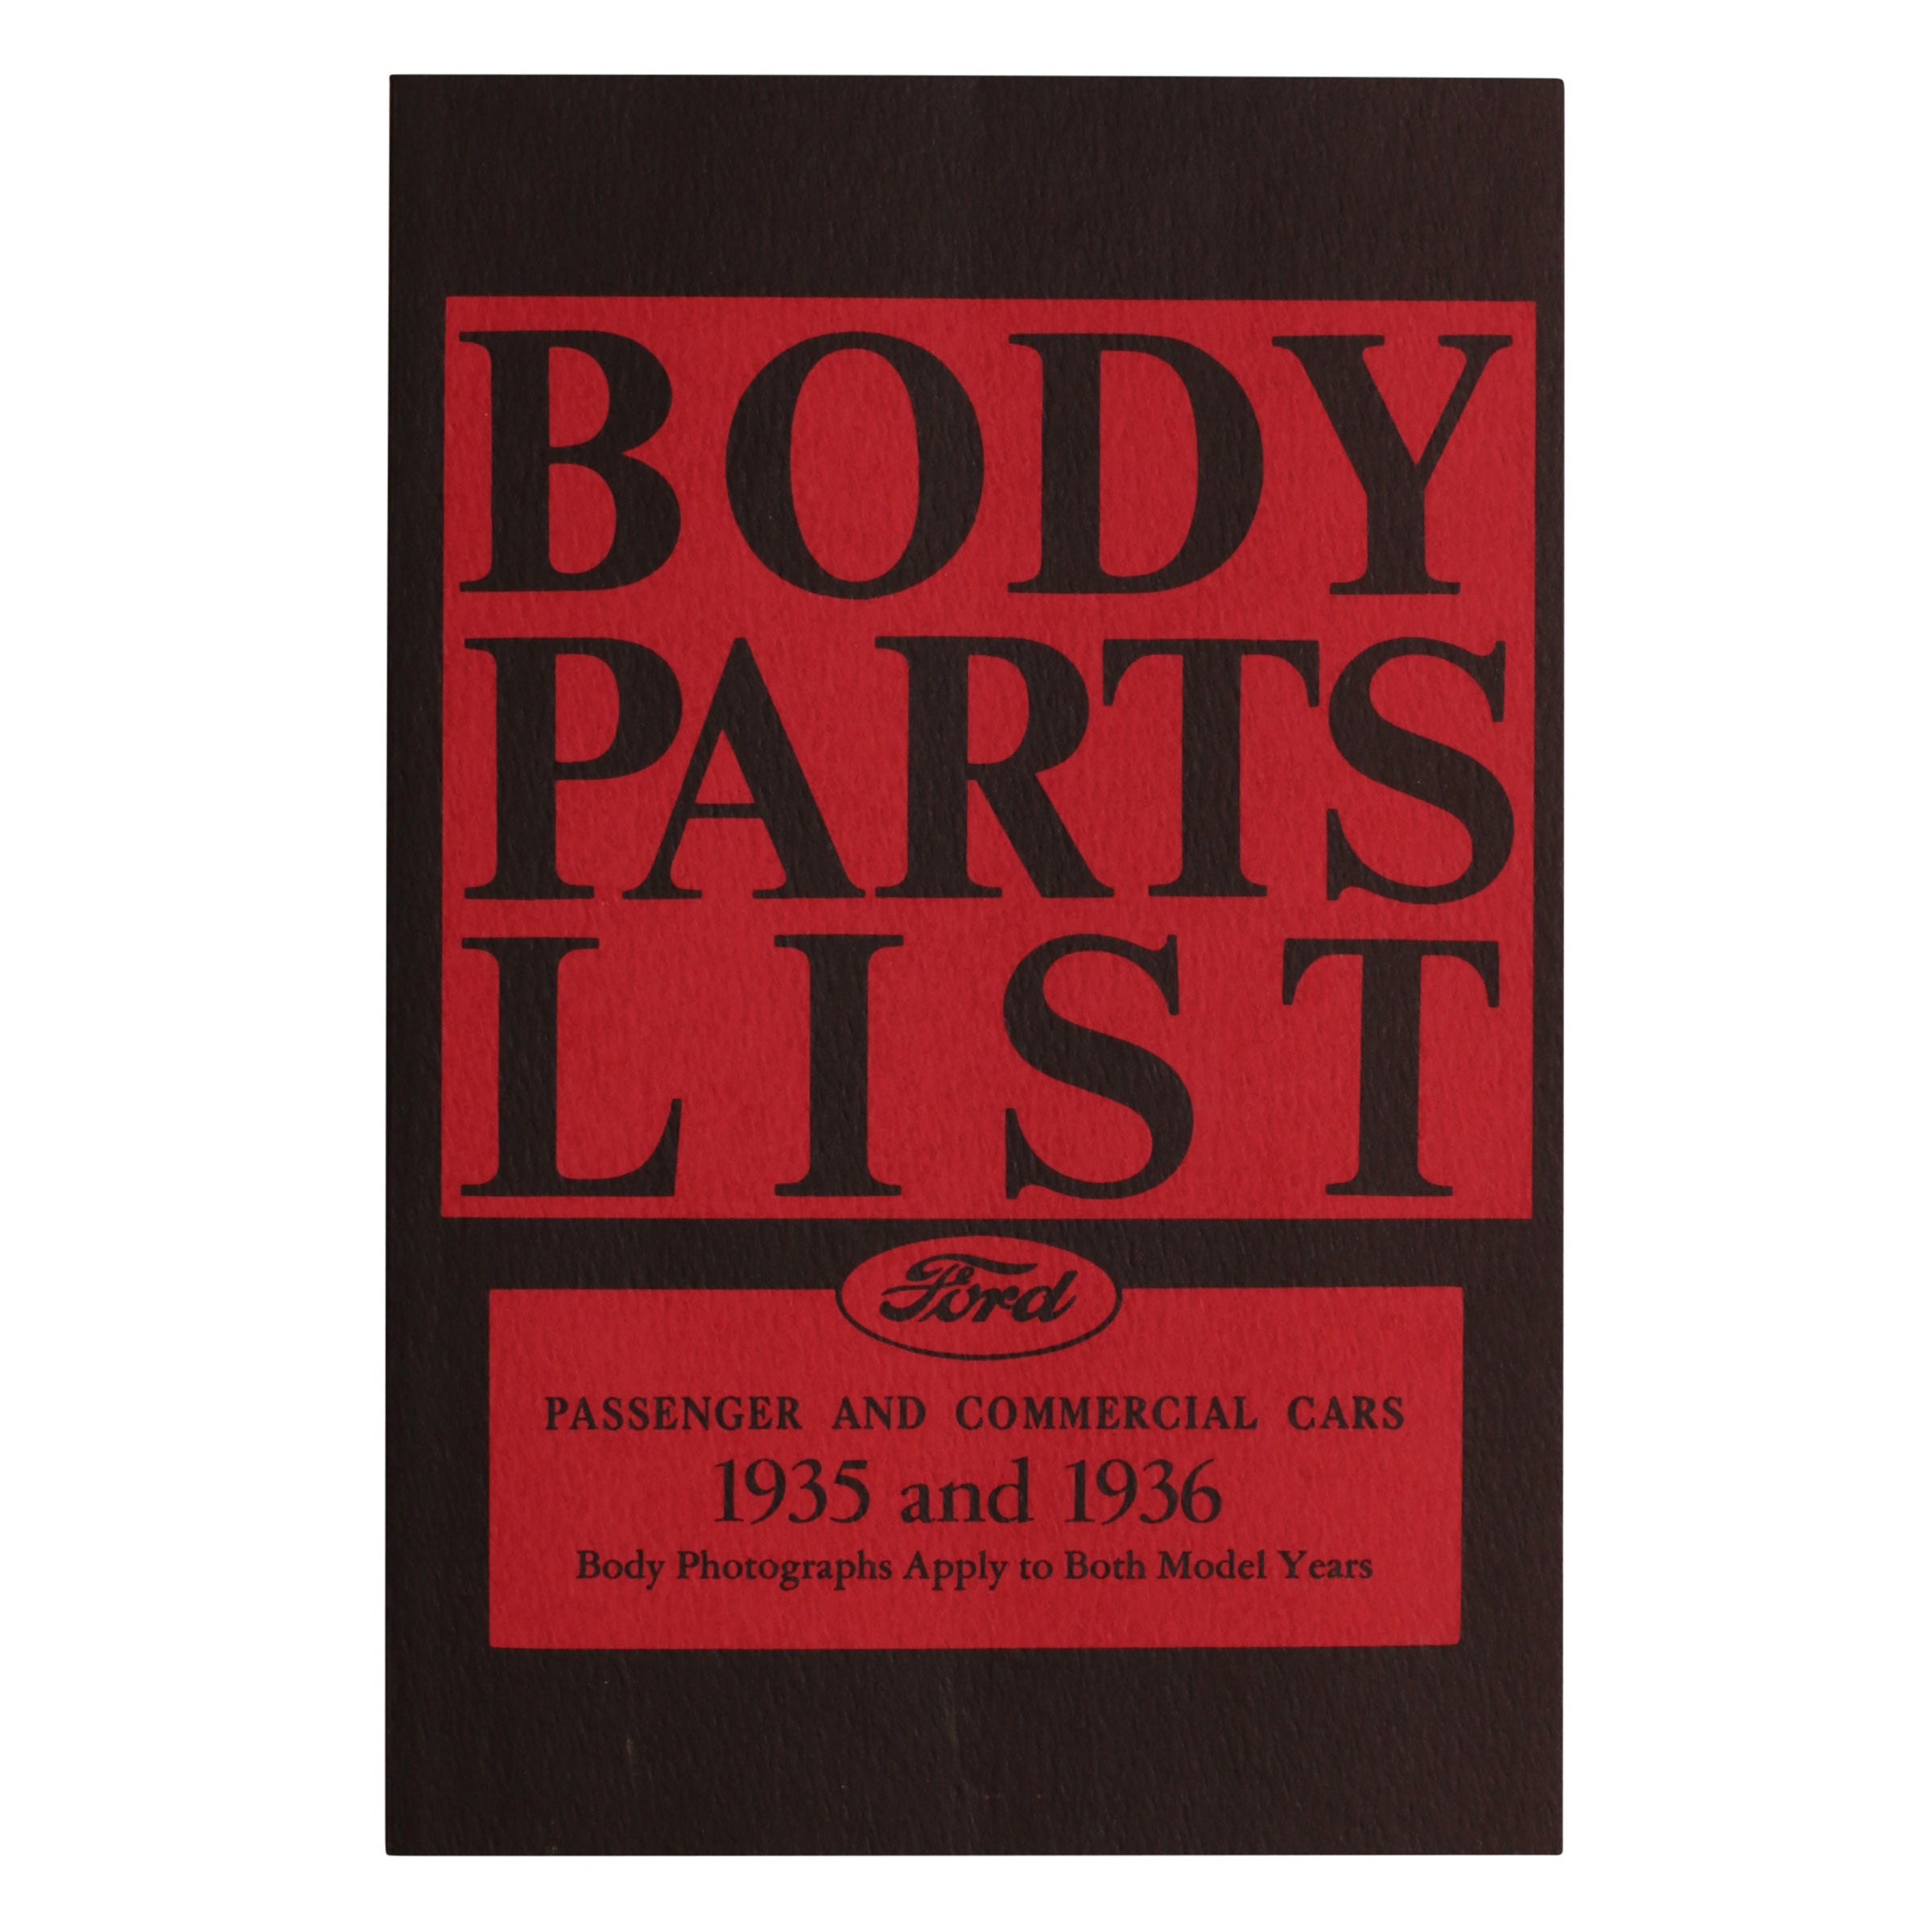 Ford Body Parts List • 1935-36 Ford